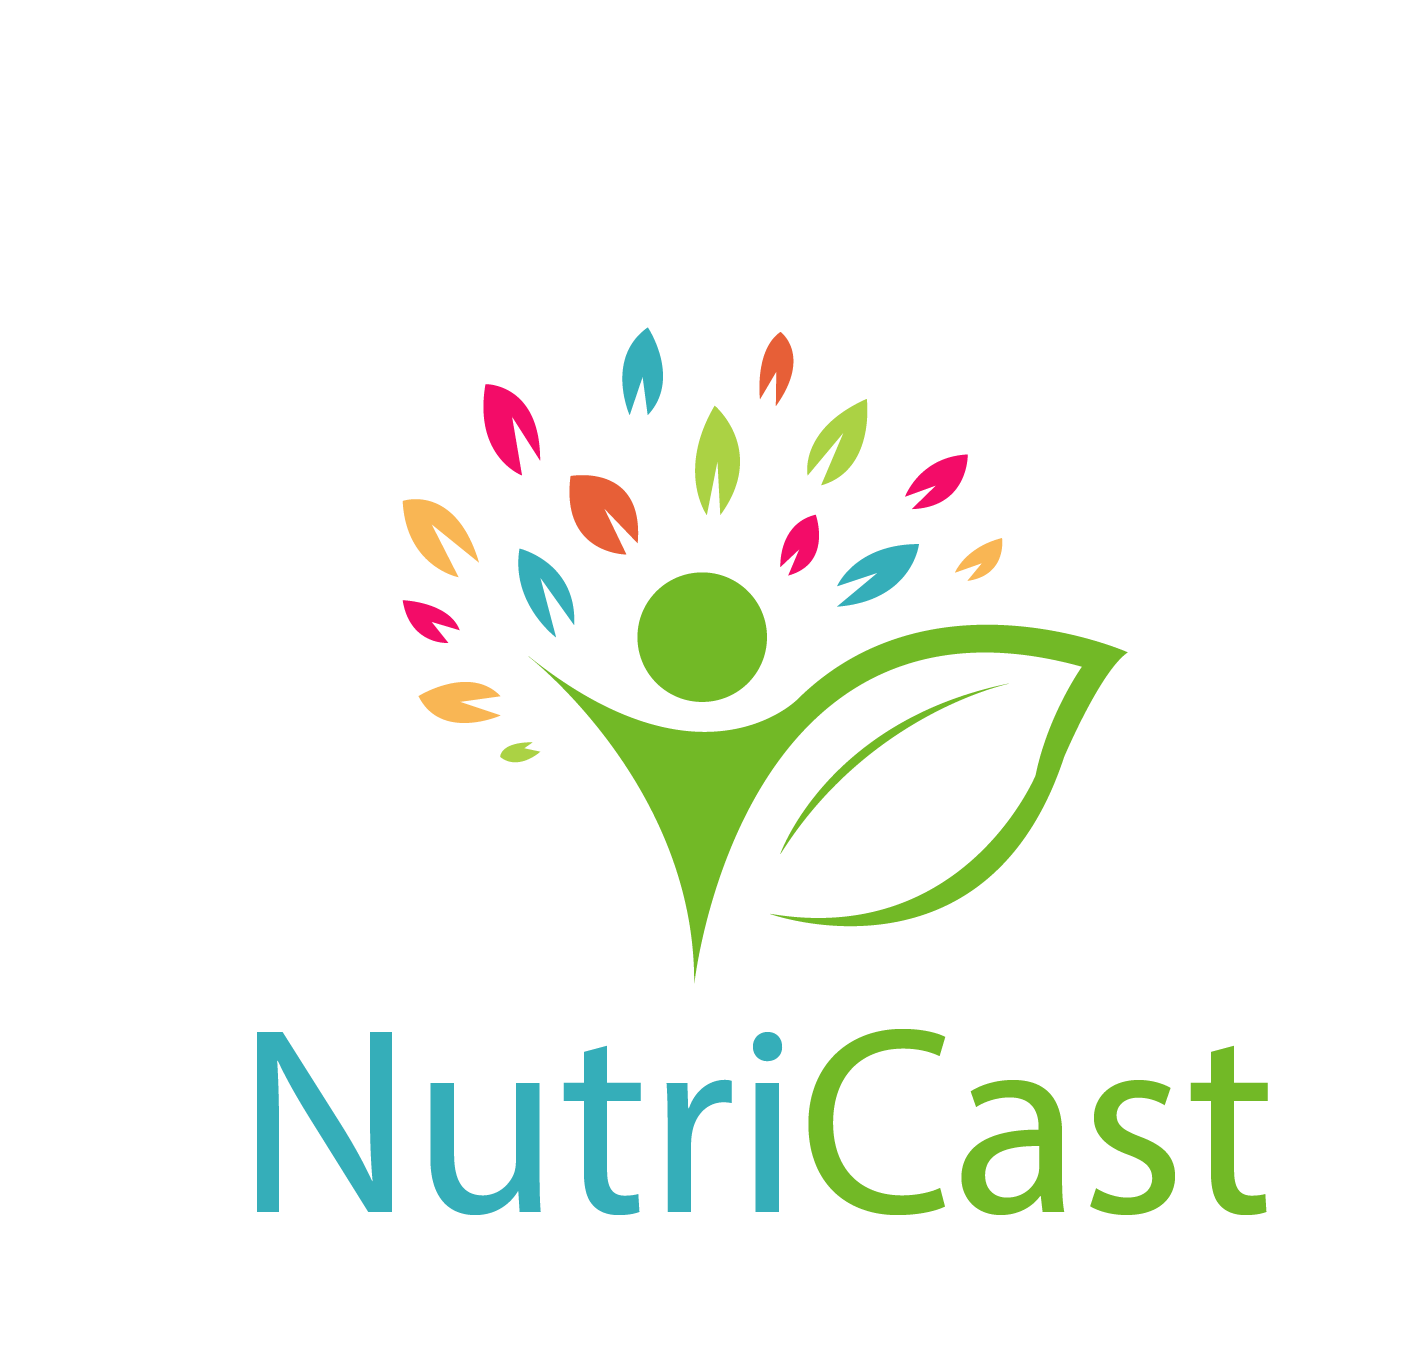 Nutricast